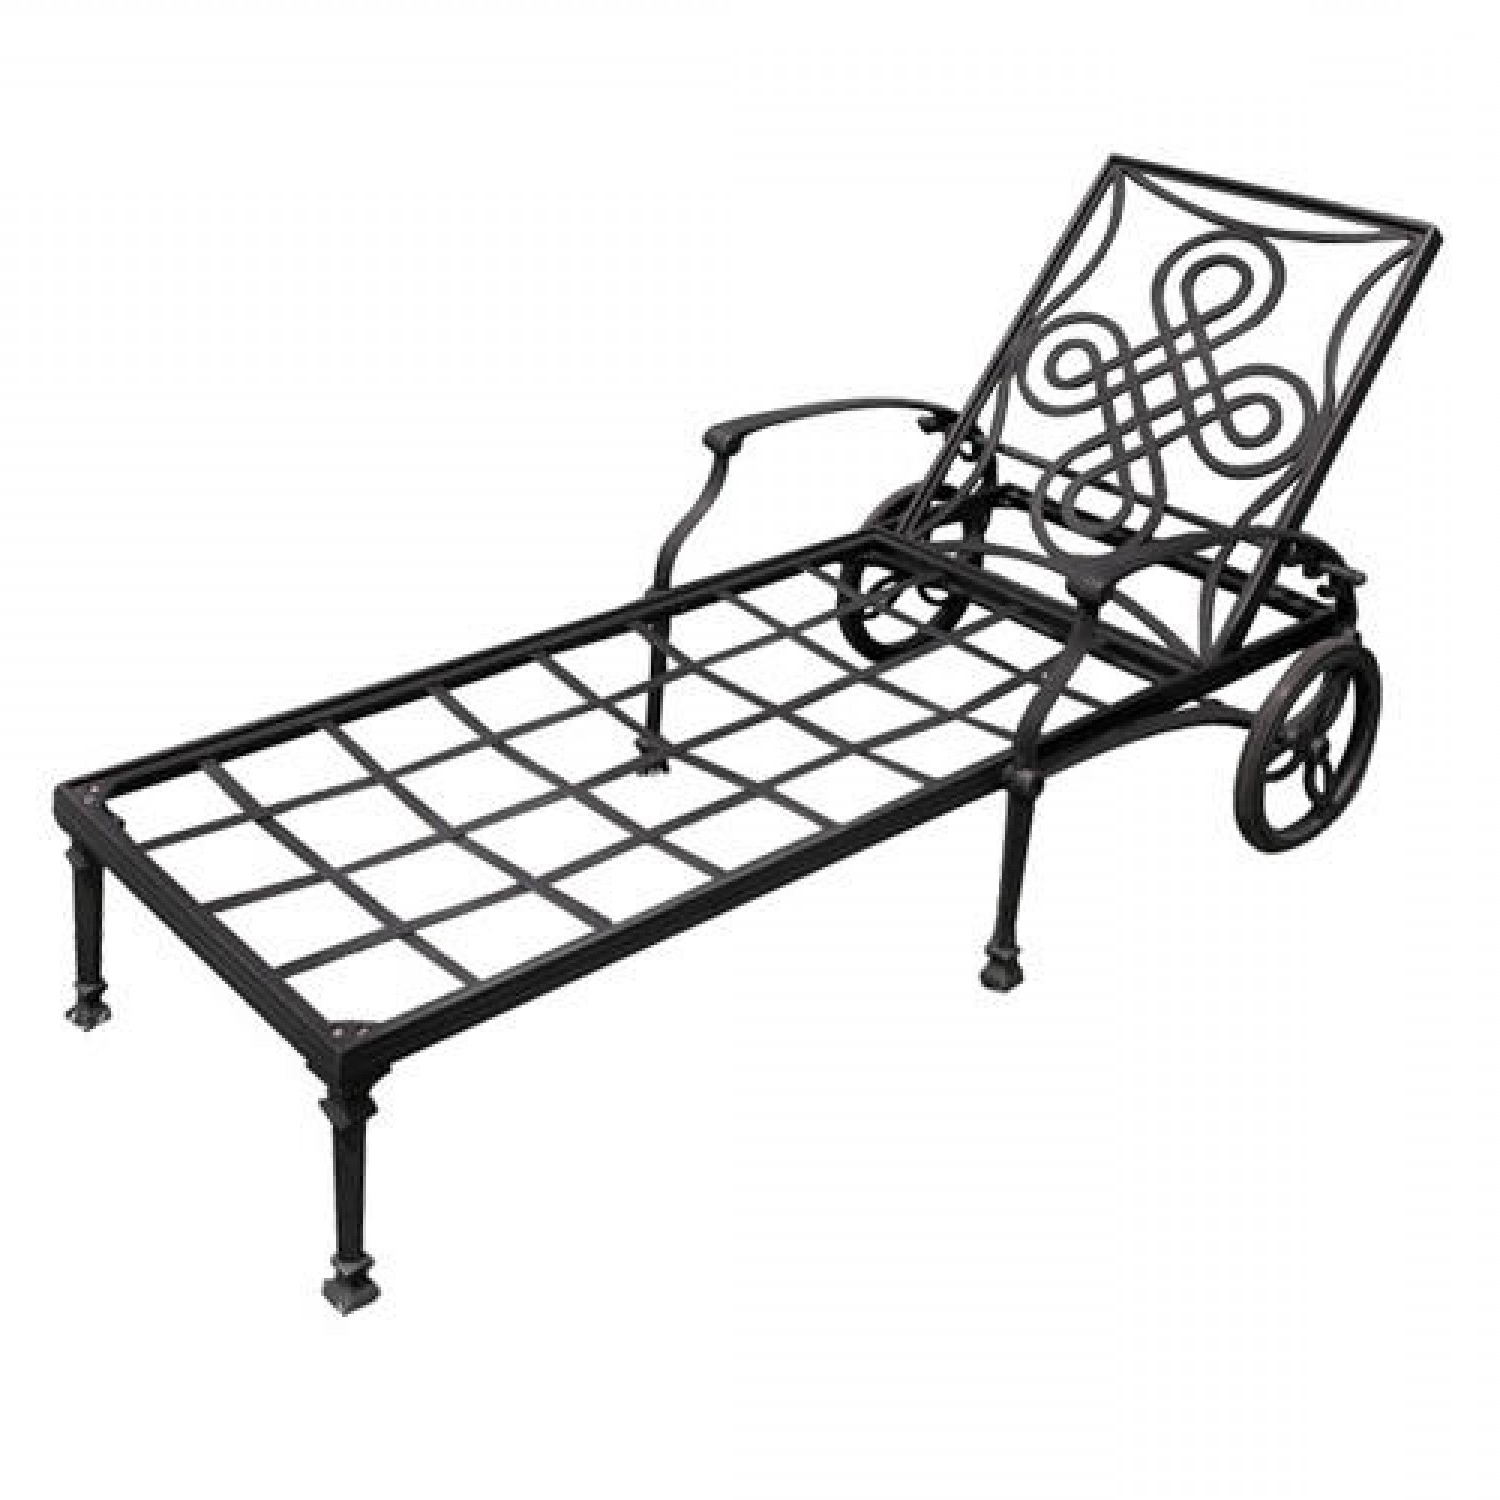 Cast Aluminum Chaise Lounges With Wheels Intended For Current Cast Aluminum Lounge Chairs • Lounge Chairs Ideas (View 5 of 15)